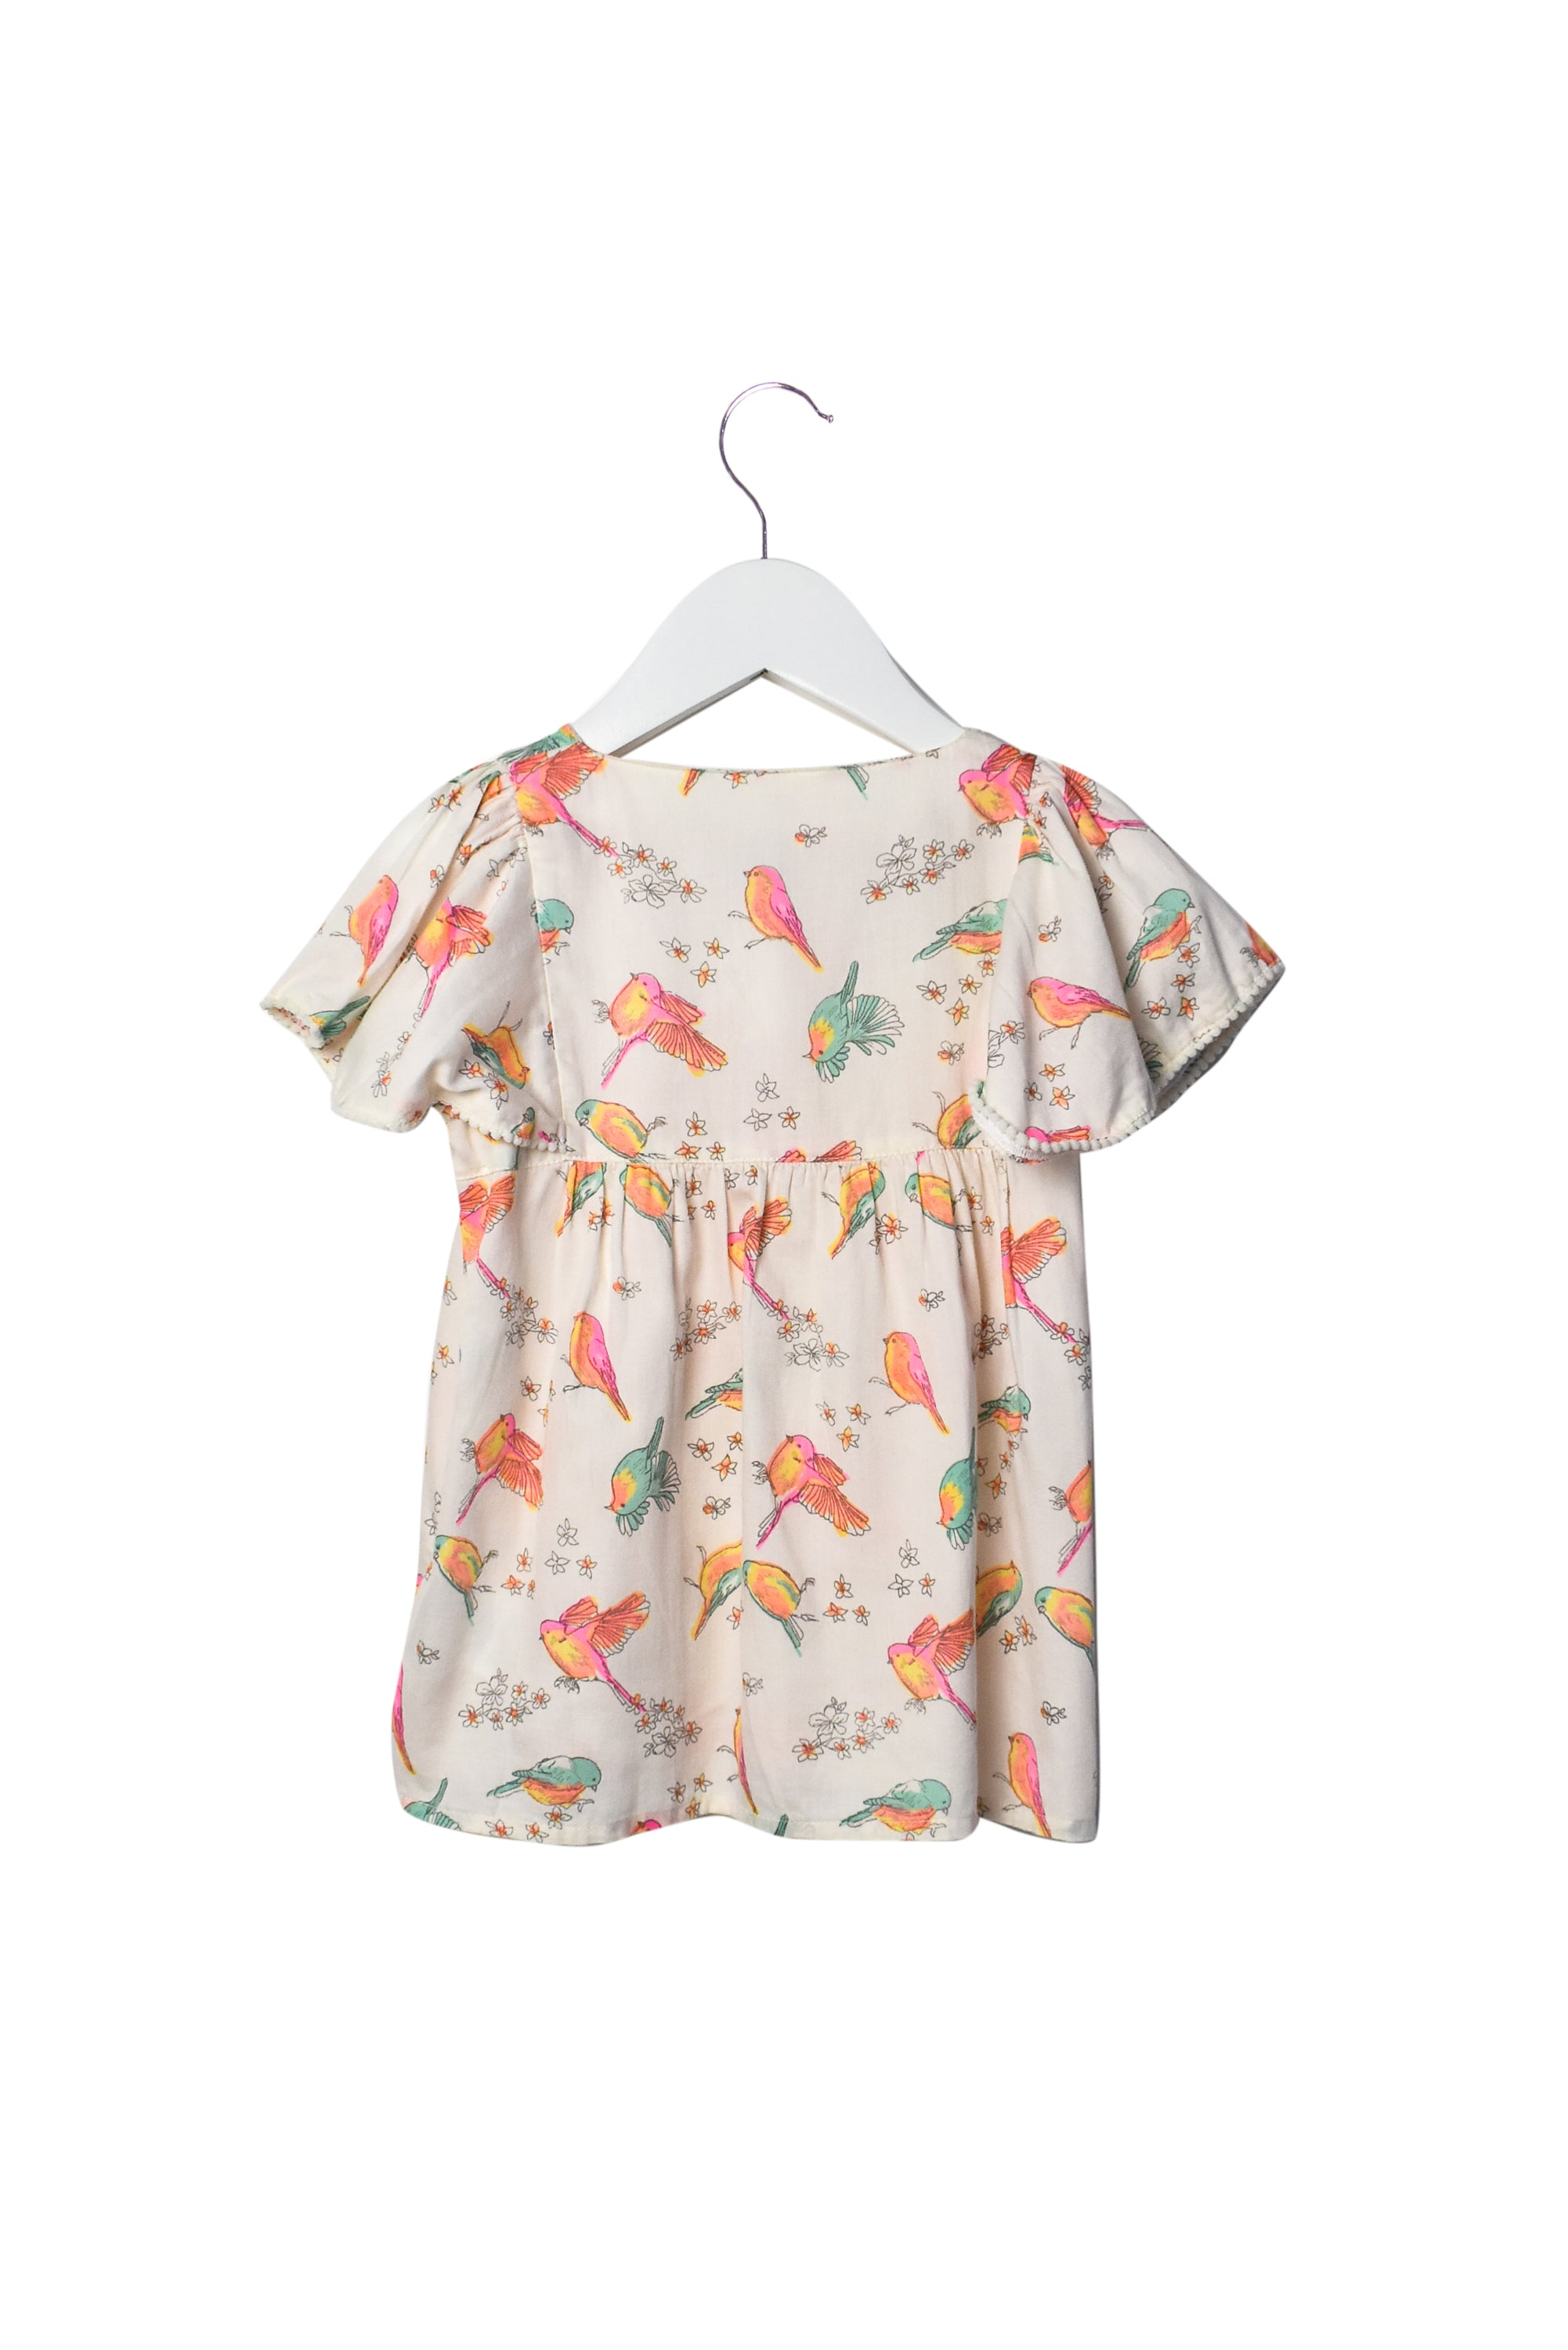 10006857 Billieblush Kids~Top 4T at Retykle